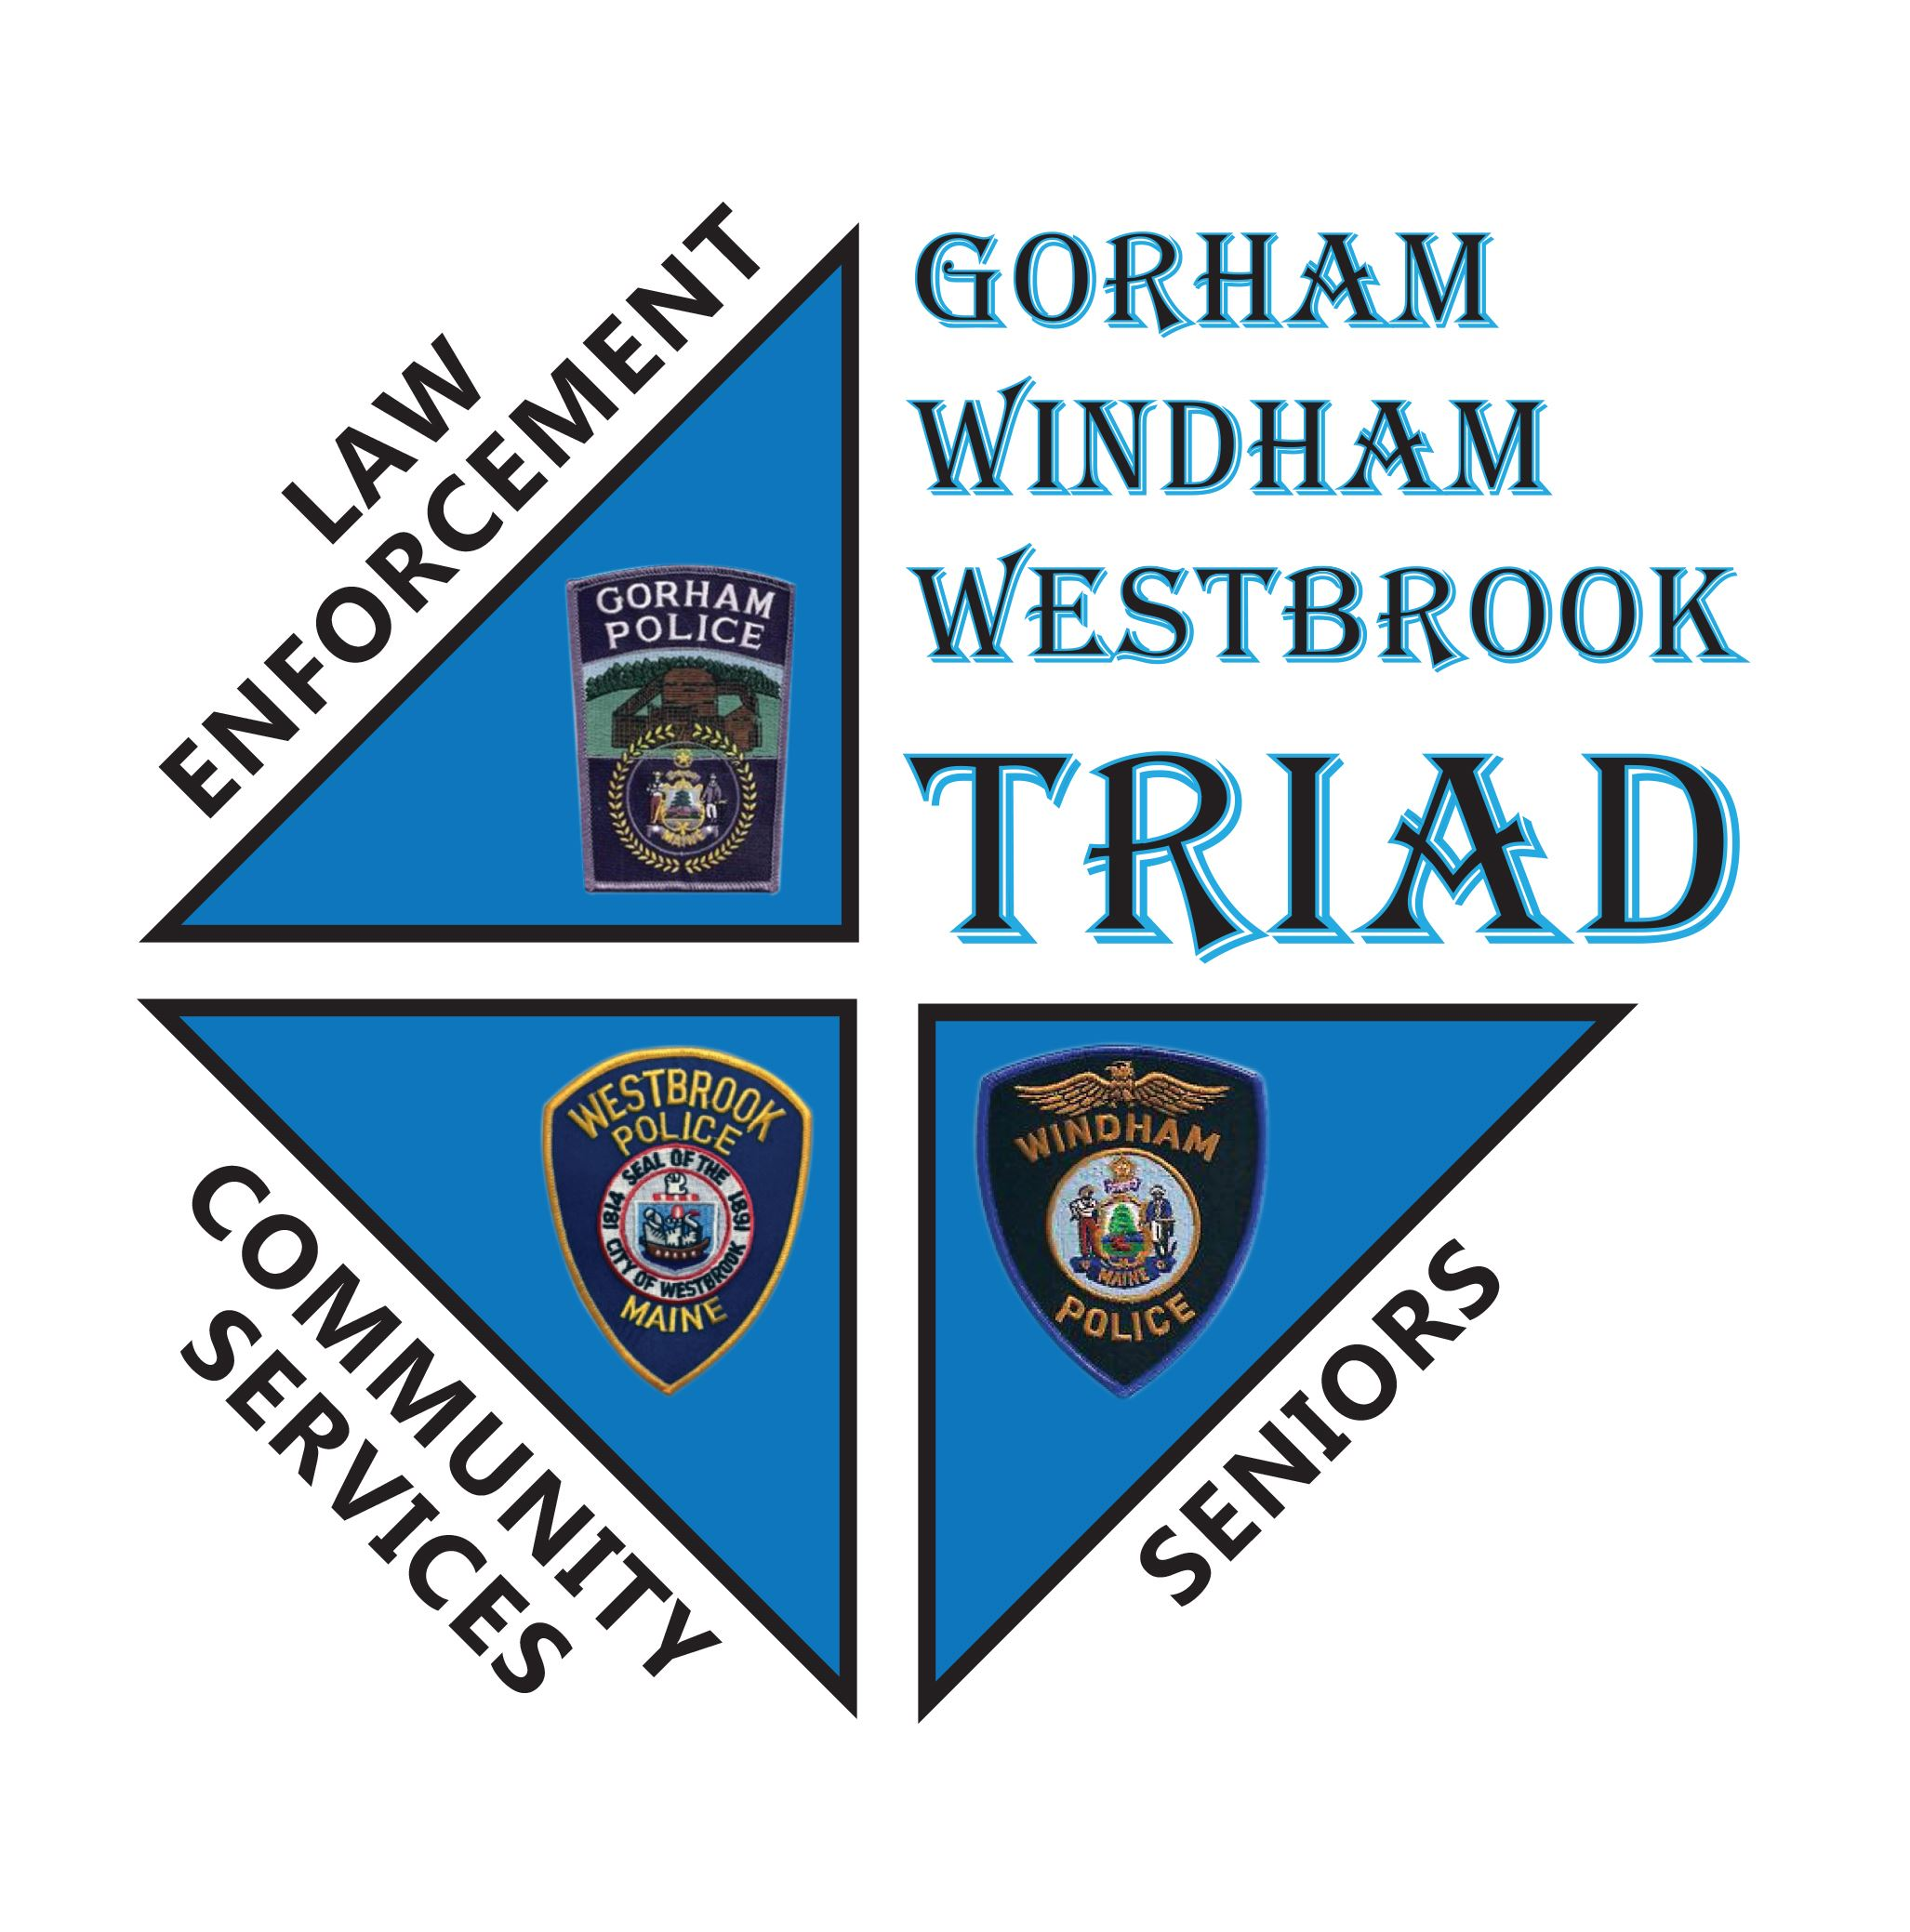 Gorham, Windham, Westbrook Triad